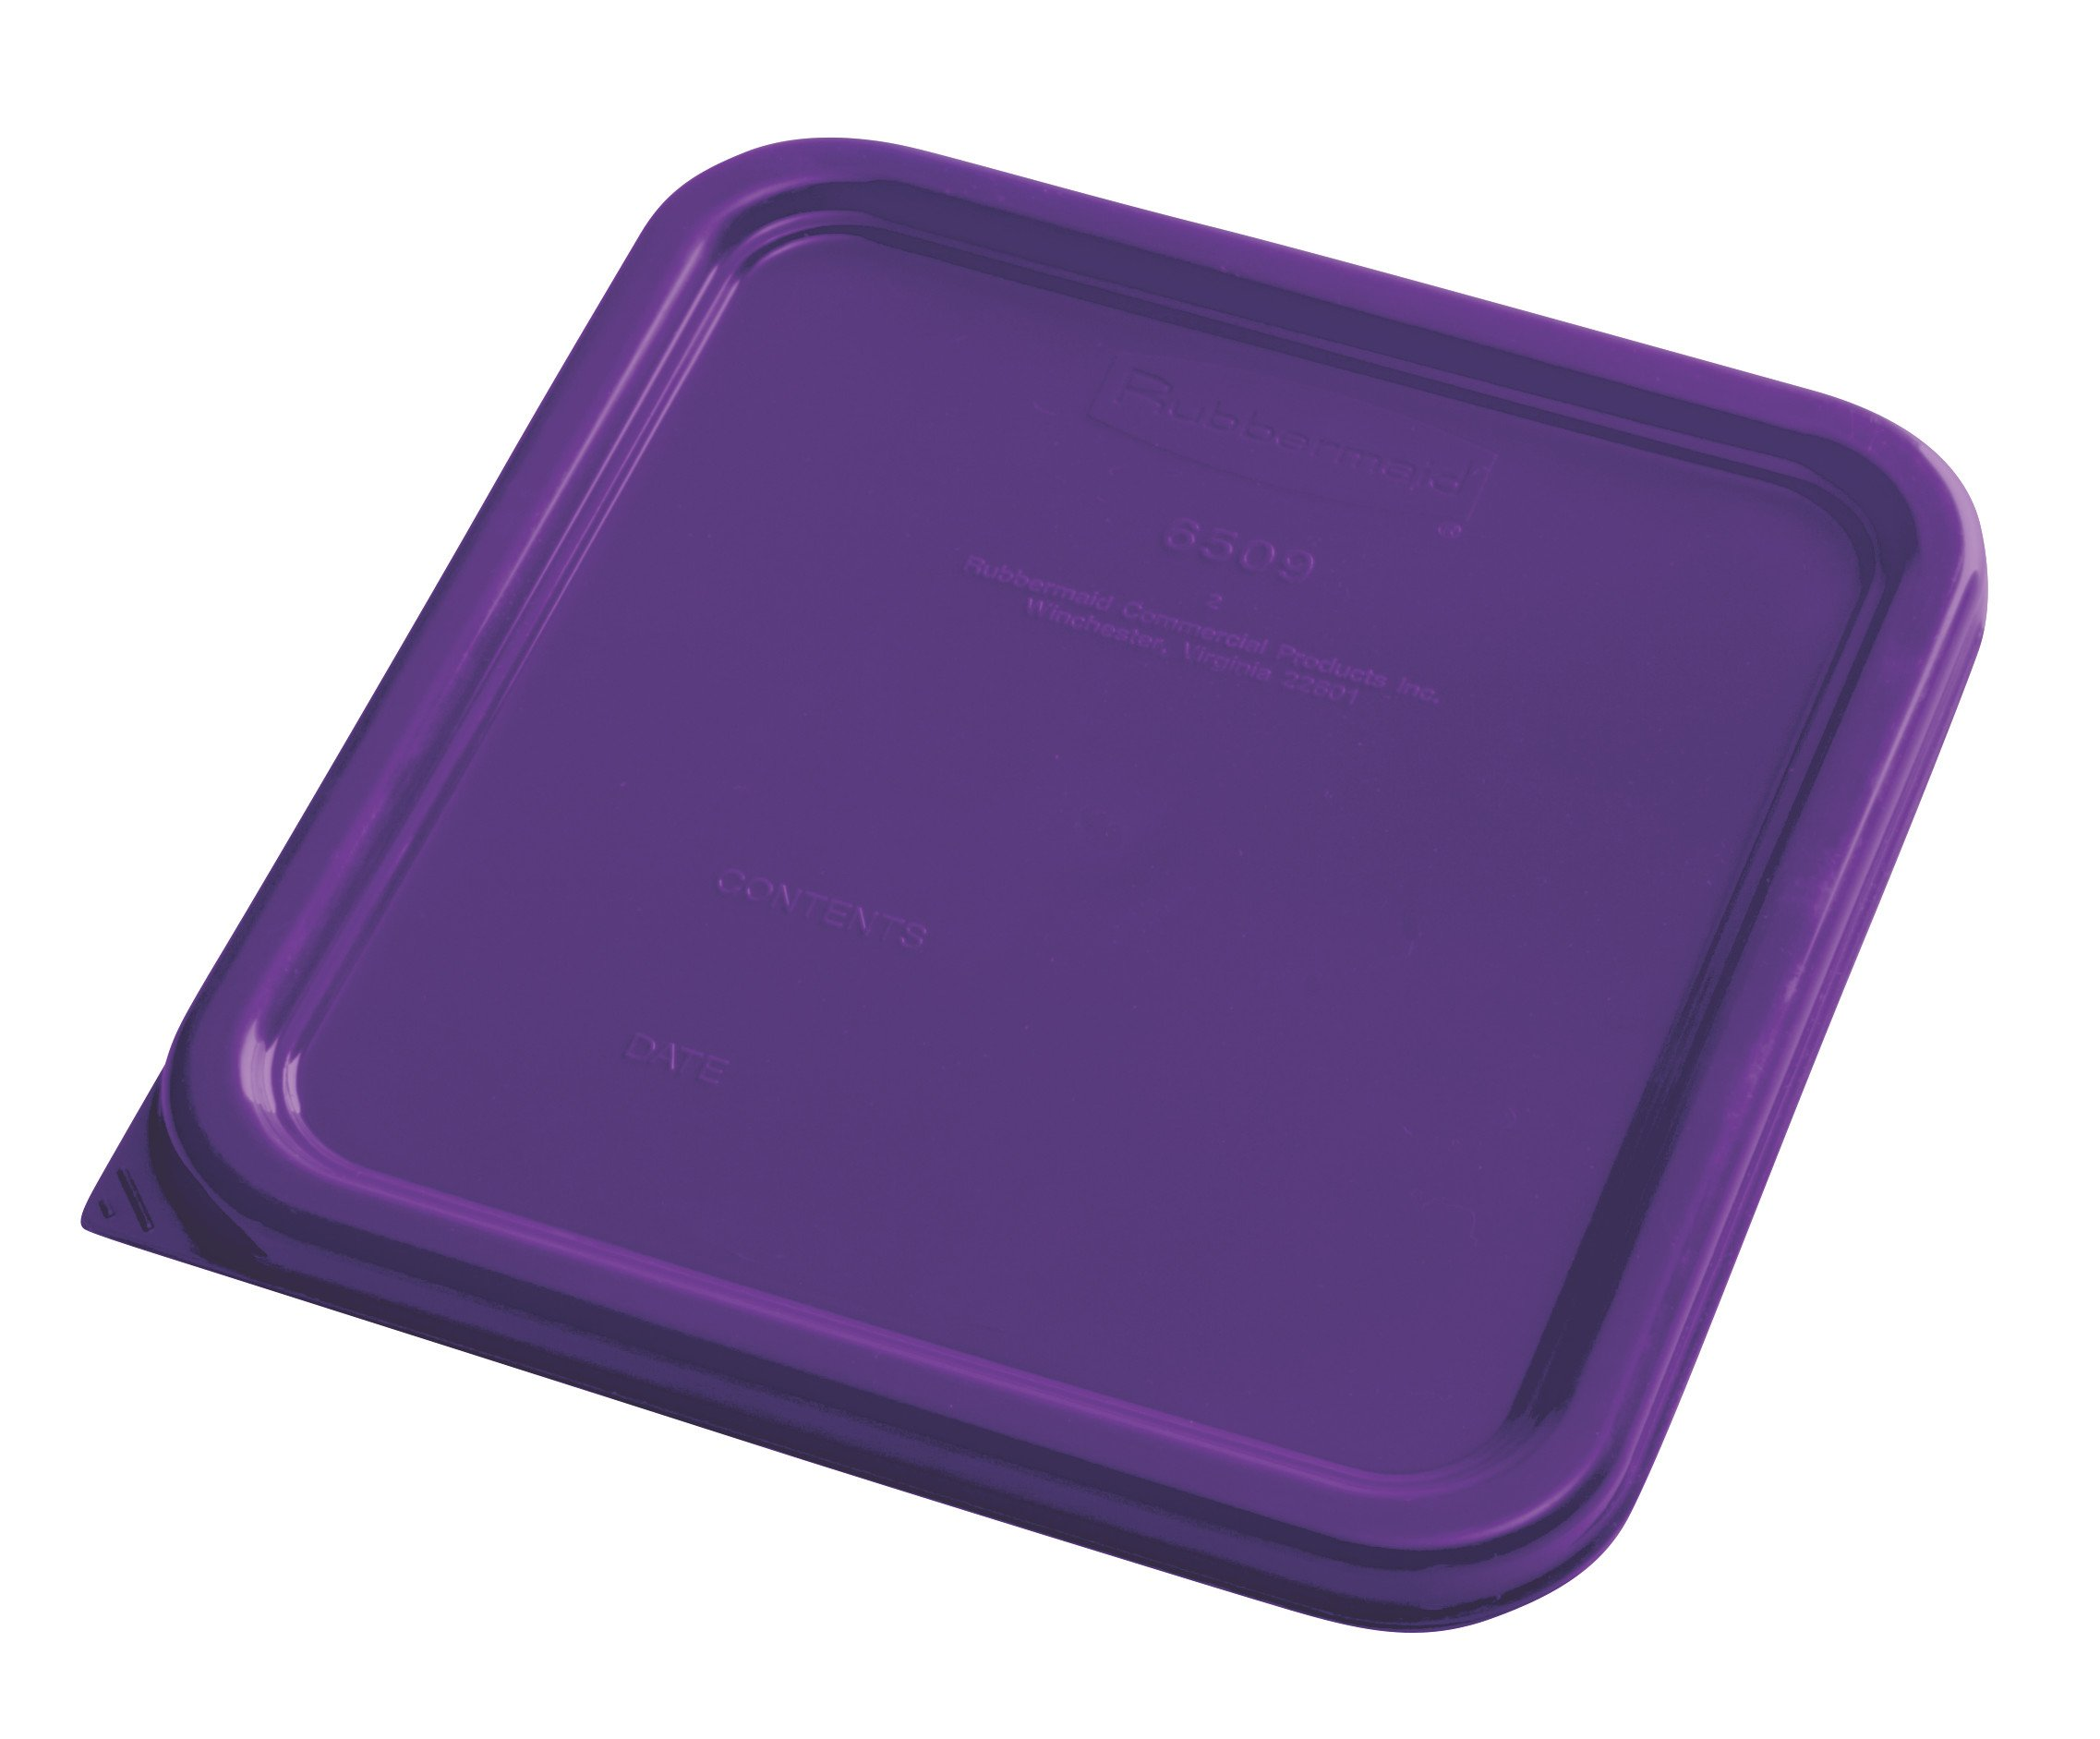 Rubbermaid Commercial Products 1980304 Rubbermaid Commercial Plastic Food Storage Container Lid, Square, Purple, 4 and 8 quart